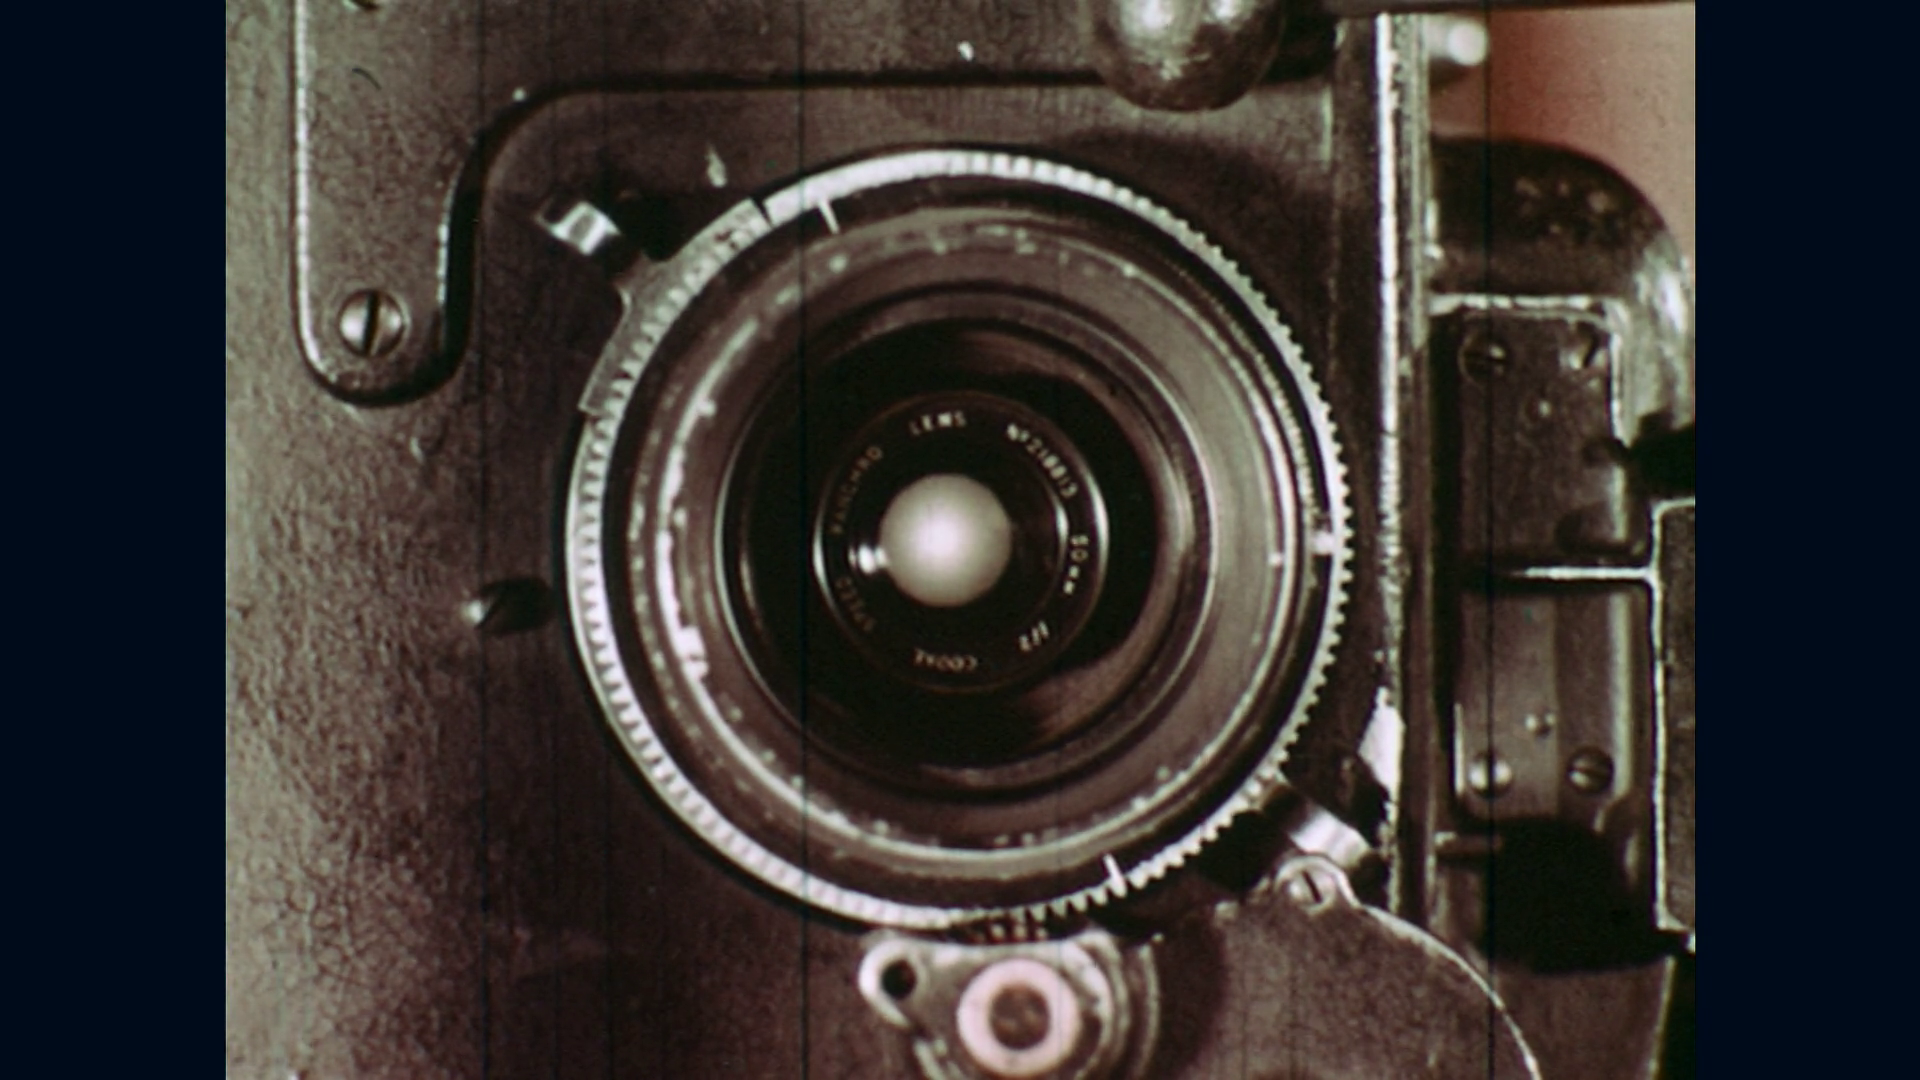 UNITED STATES: 1940s: Close up of vintage camera lens. Two men turn ...